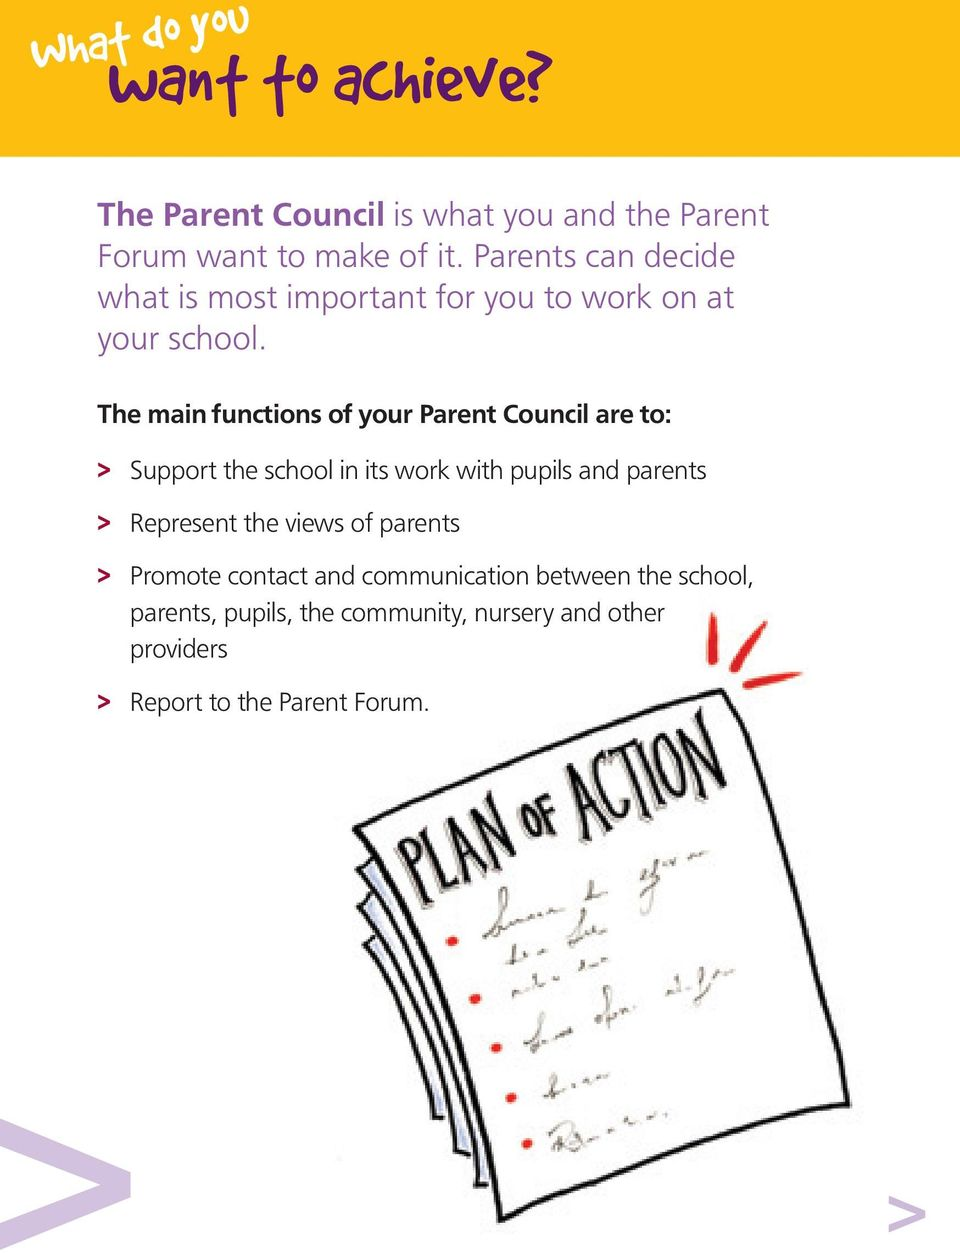 The main functions of your Parent Council are to: > Support the school in its work with pupils and parents >